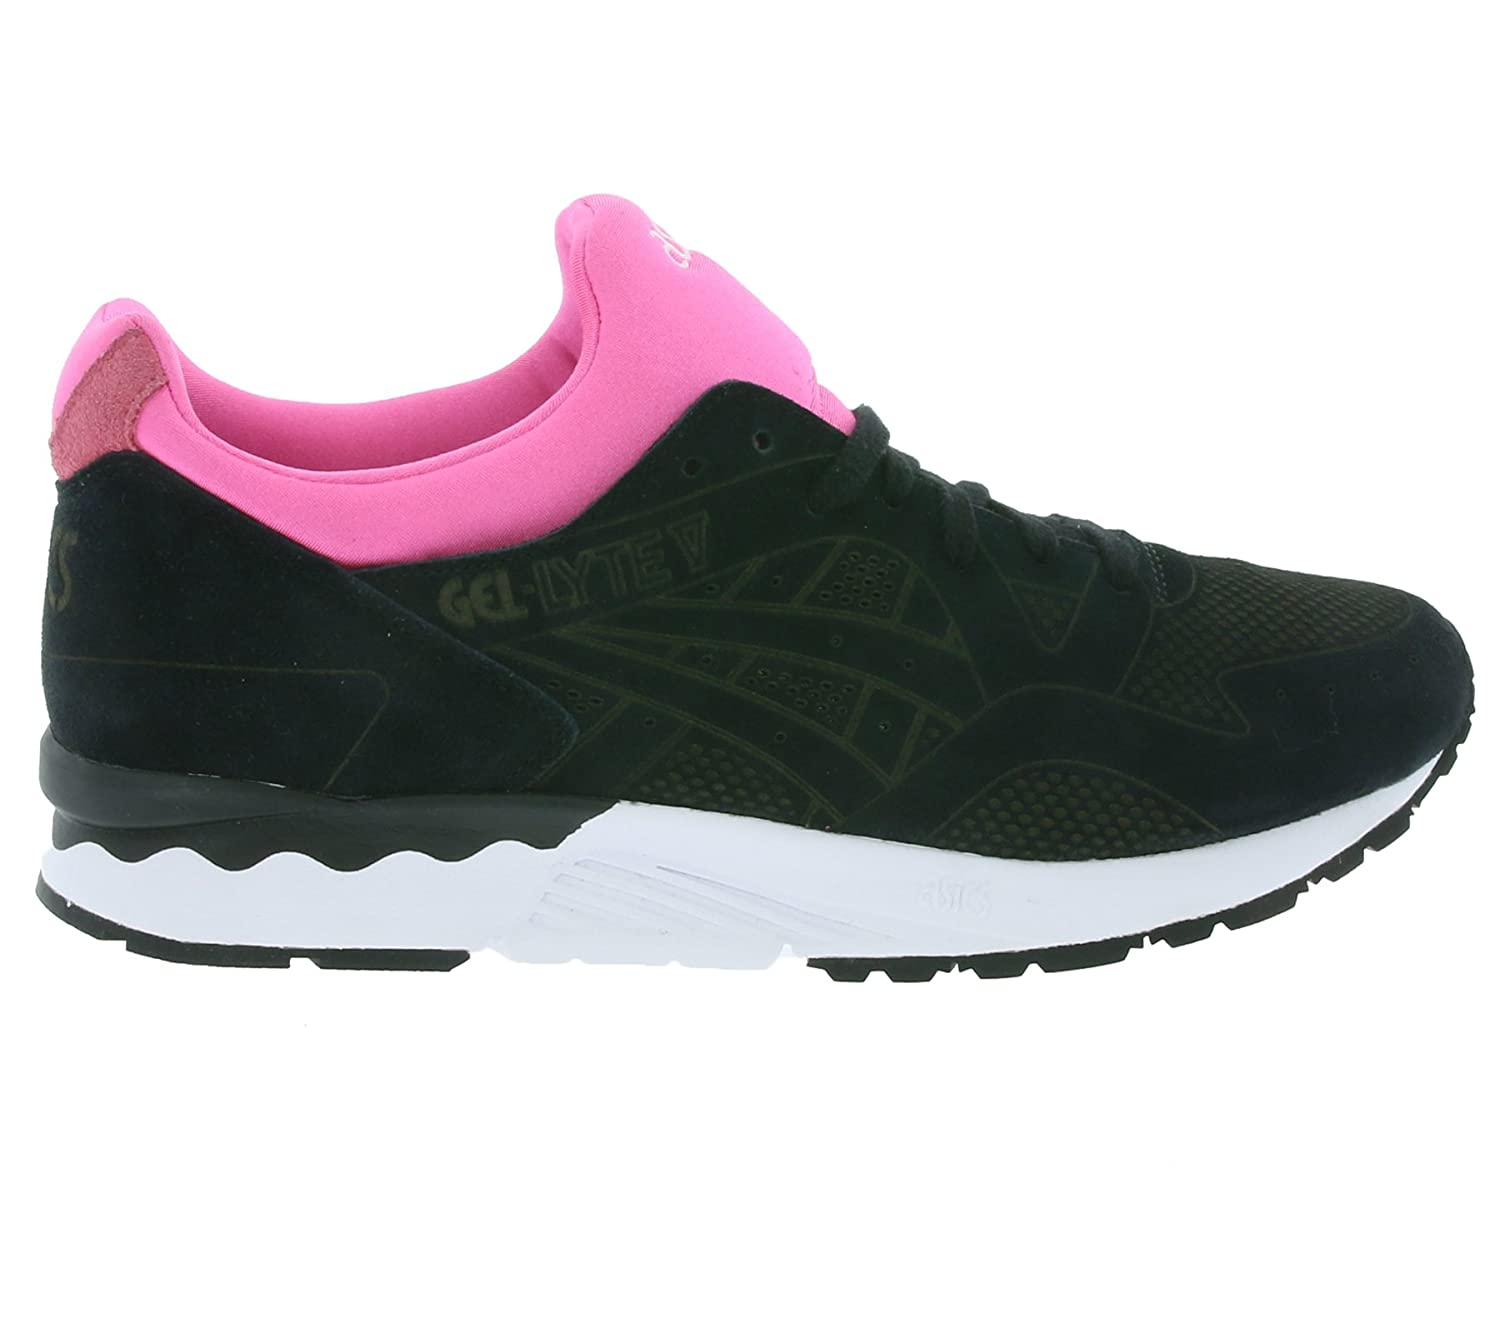 asics Gel-Lyte V LC Trainers Black HL 506-9090, Size:41.5: Amazon.ca: Shoes  & Handbags